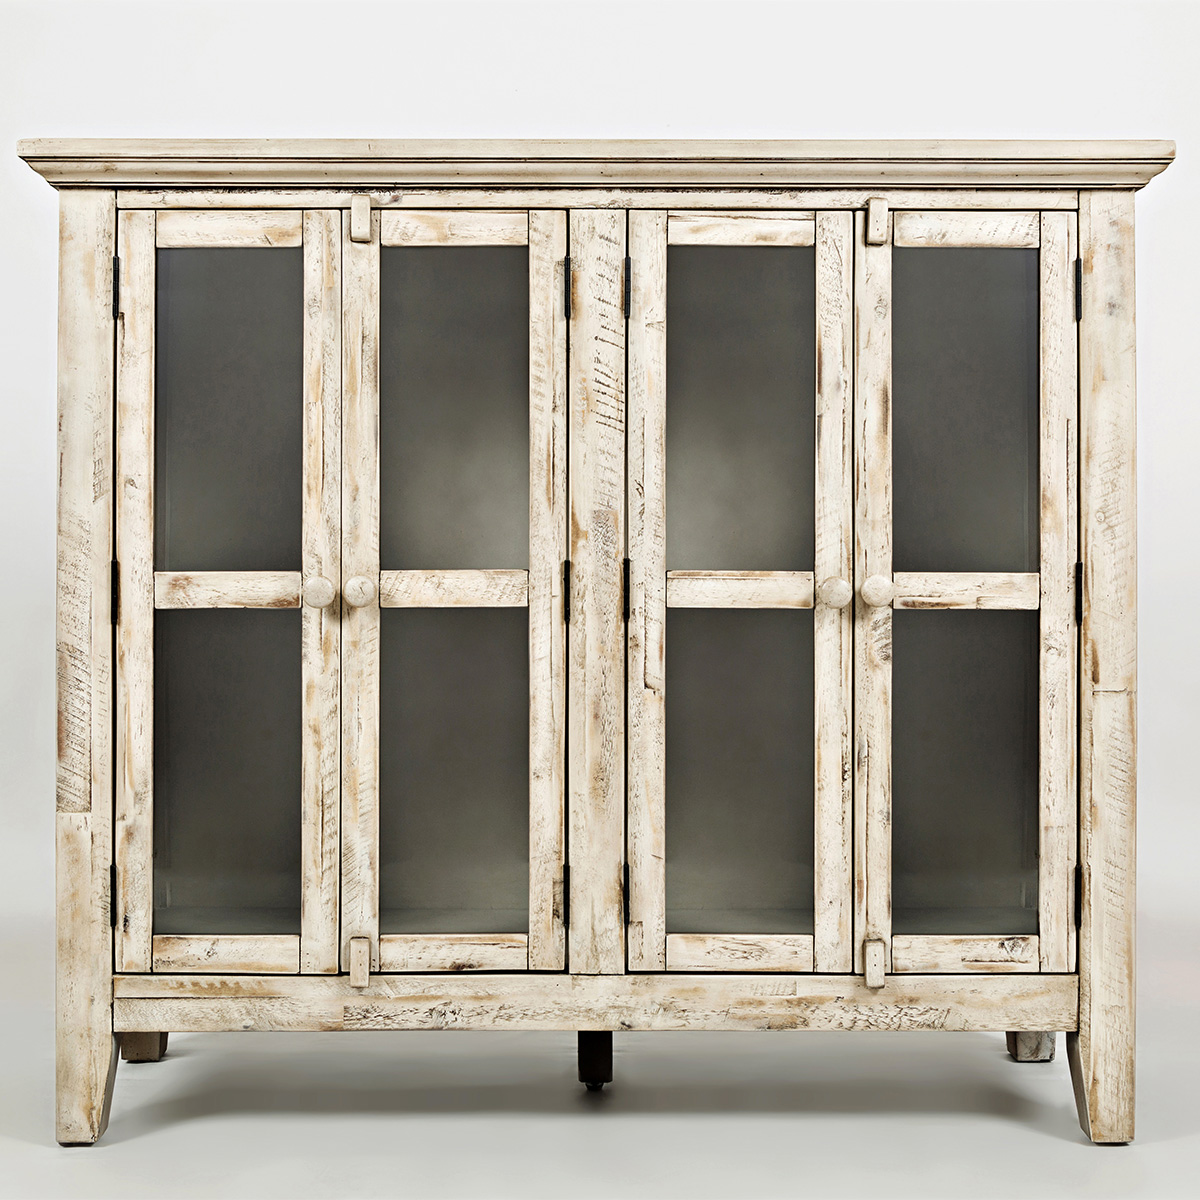 Accent cabinet with glass doors - Rustic Shores Scrimshaw 48 Accent Cabinet In Distressed Cream W Glass Doors